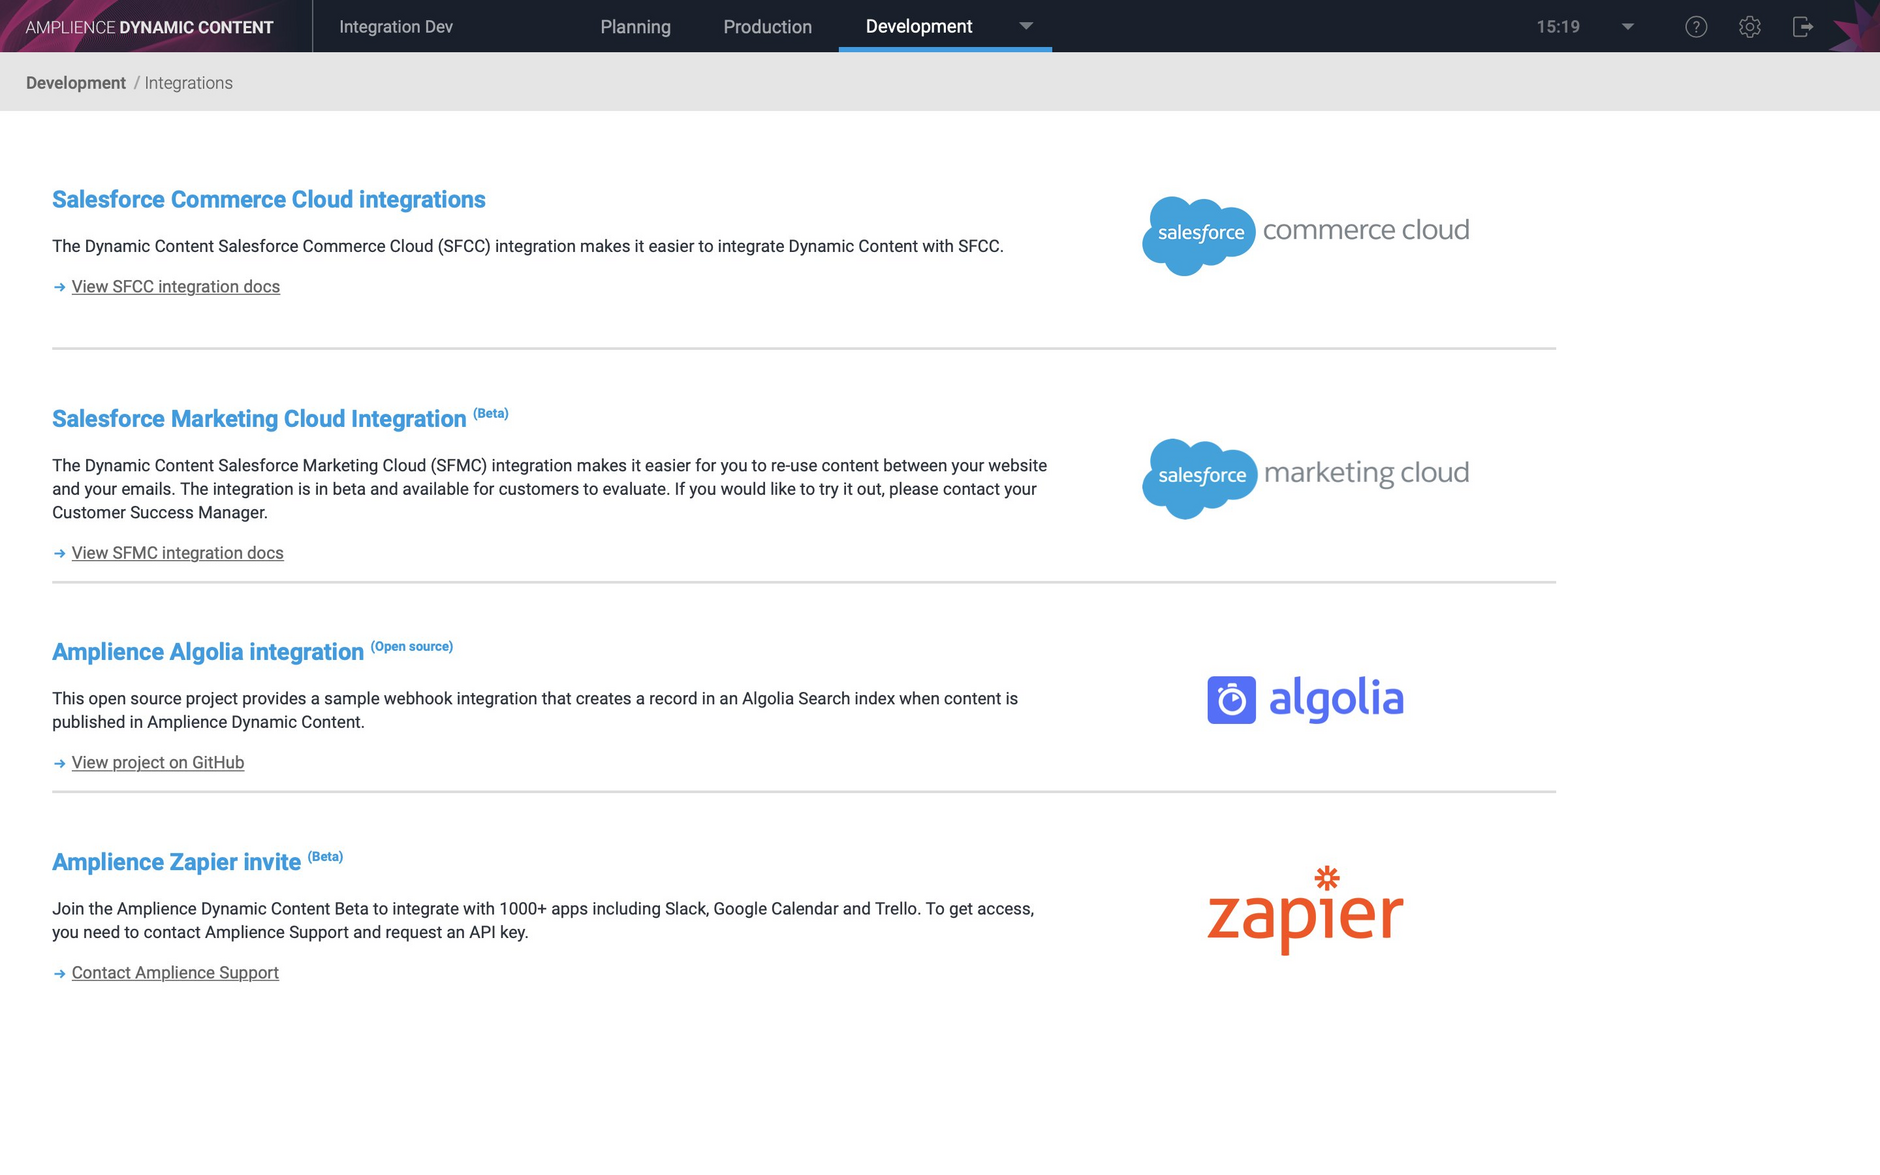 The integrations home page has been updated to provide easy access to information about the SFMC and Algolia integrations